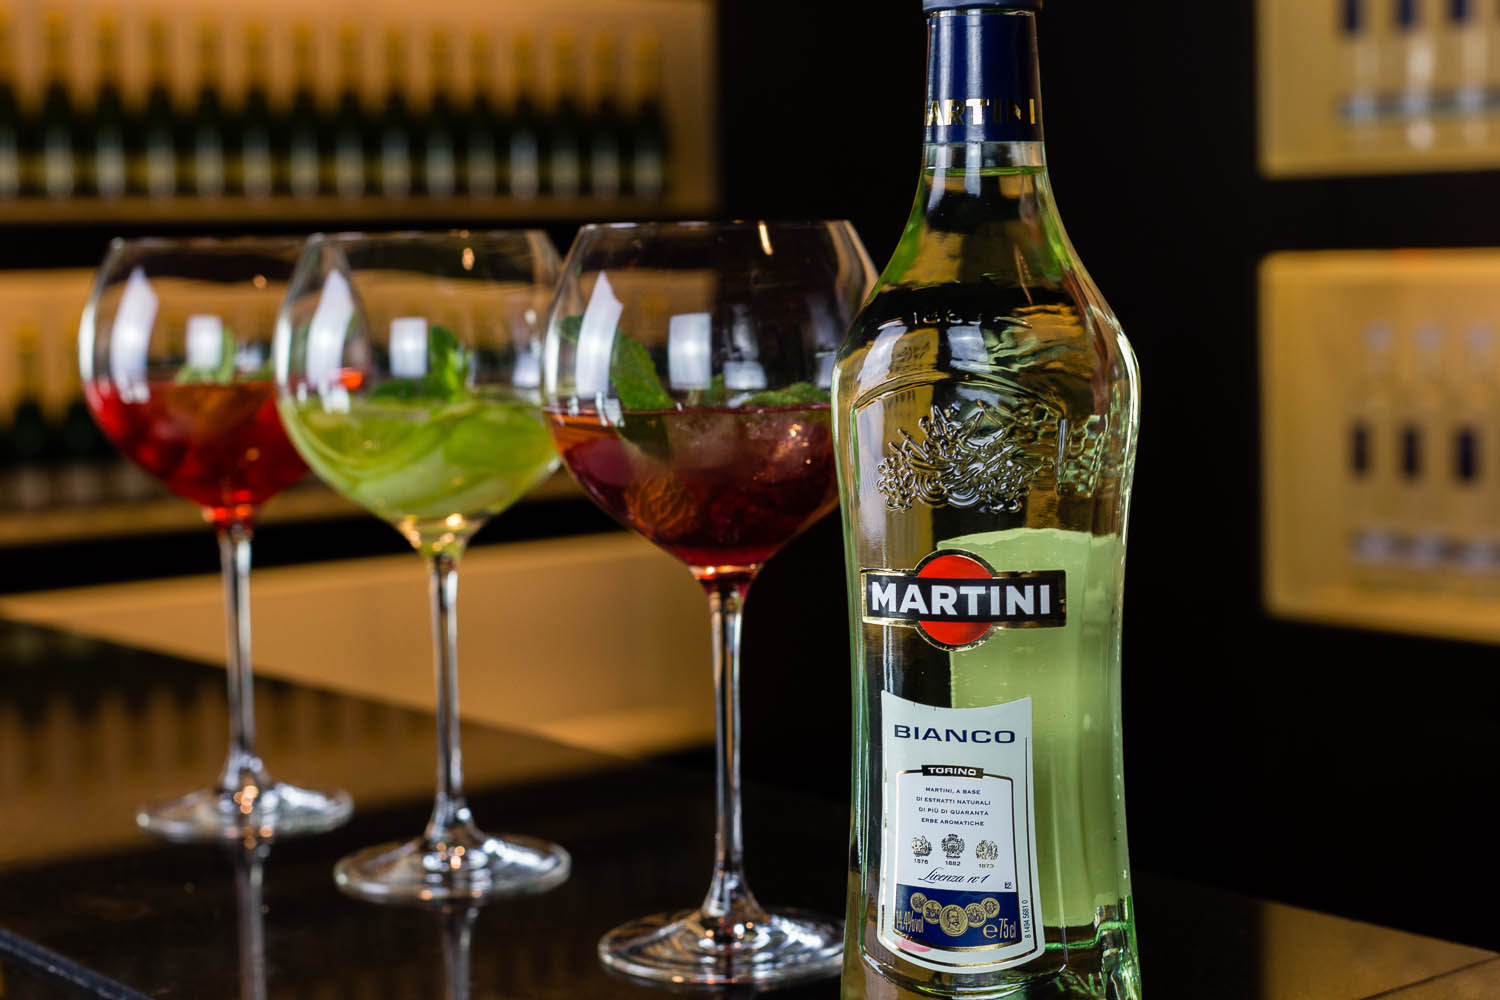 martini bianco bottle berlin hotel grand hyatt bar